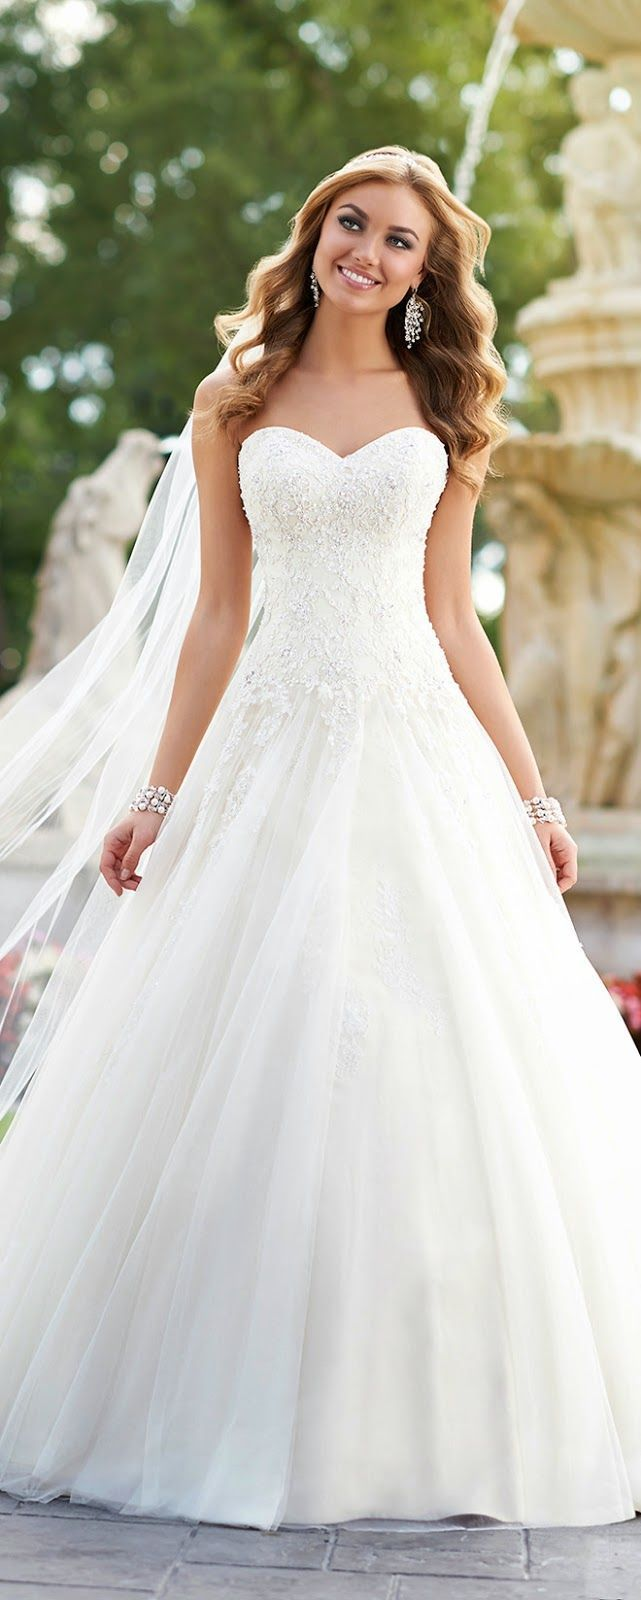 Vestido de novia Otoño 2015 Stella York bridal collection